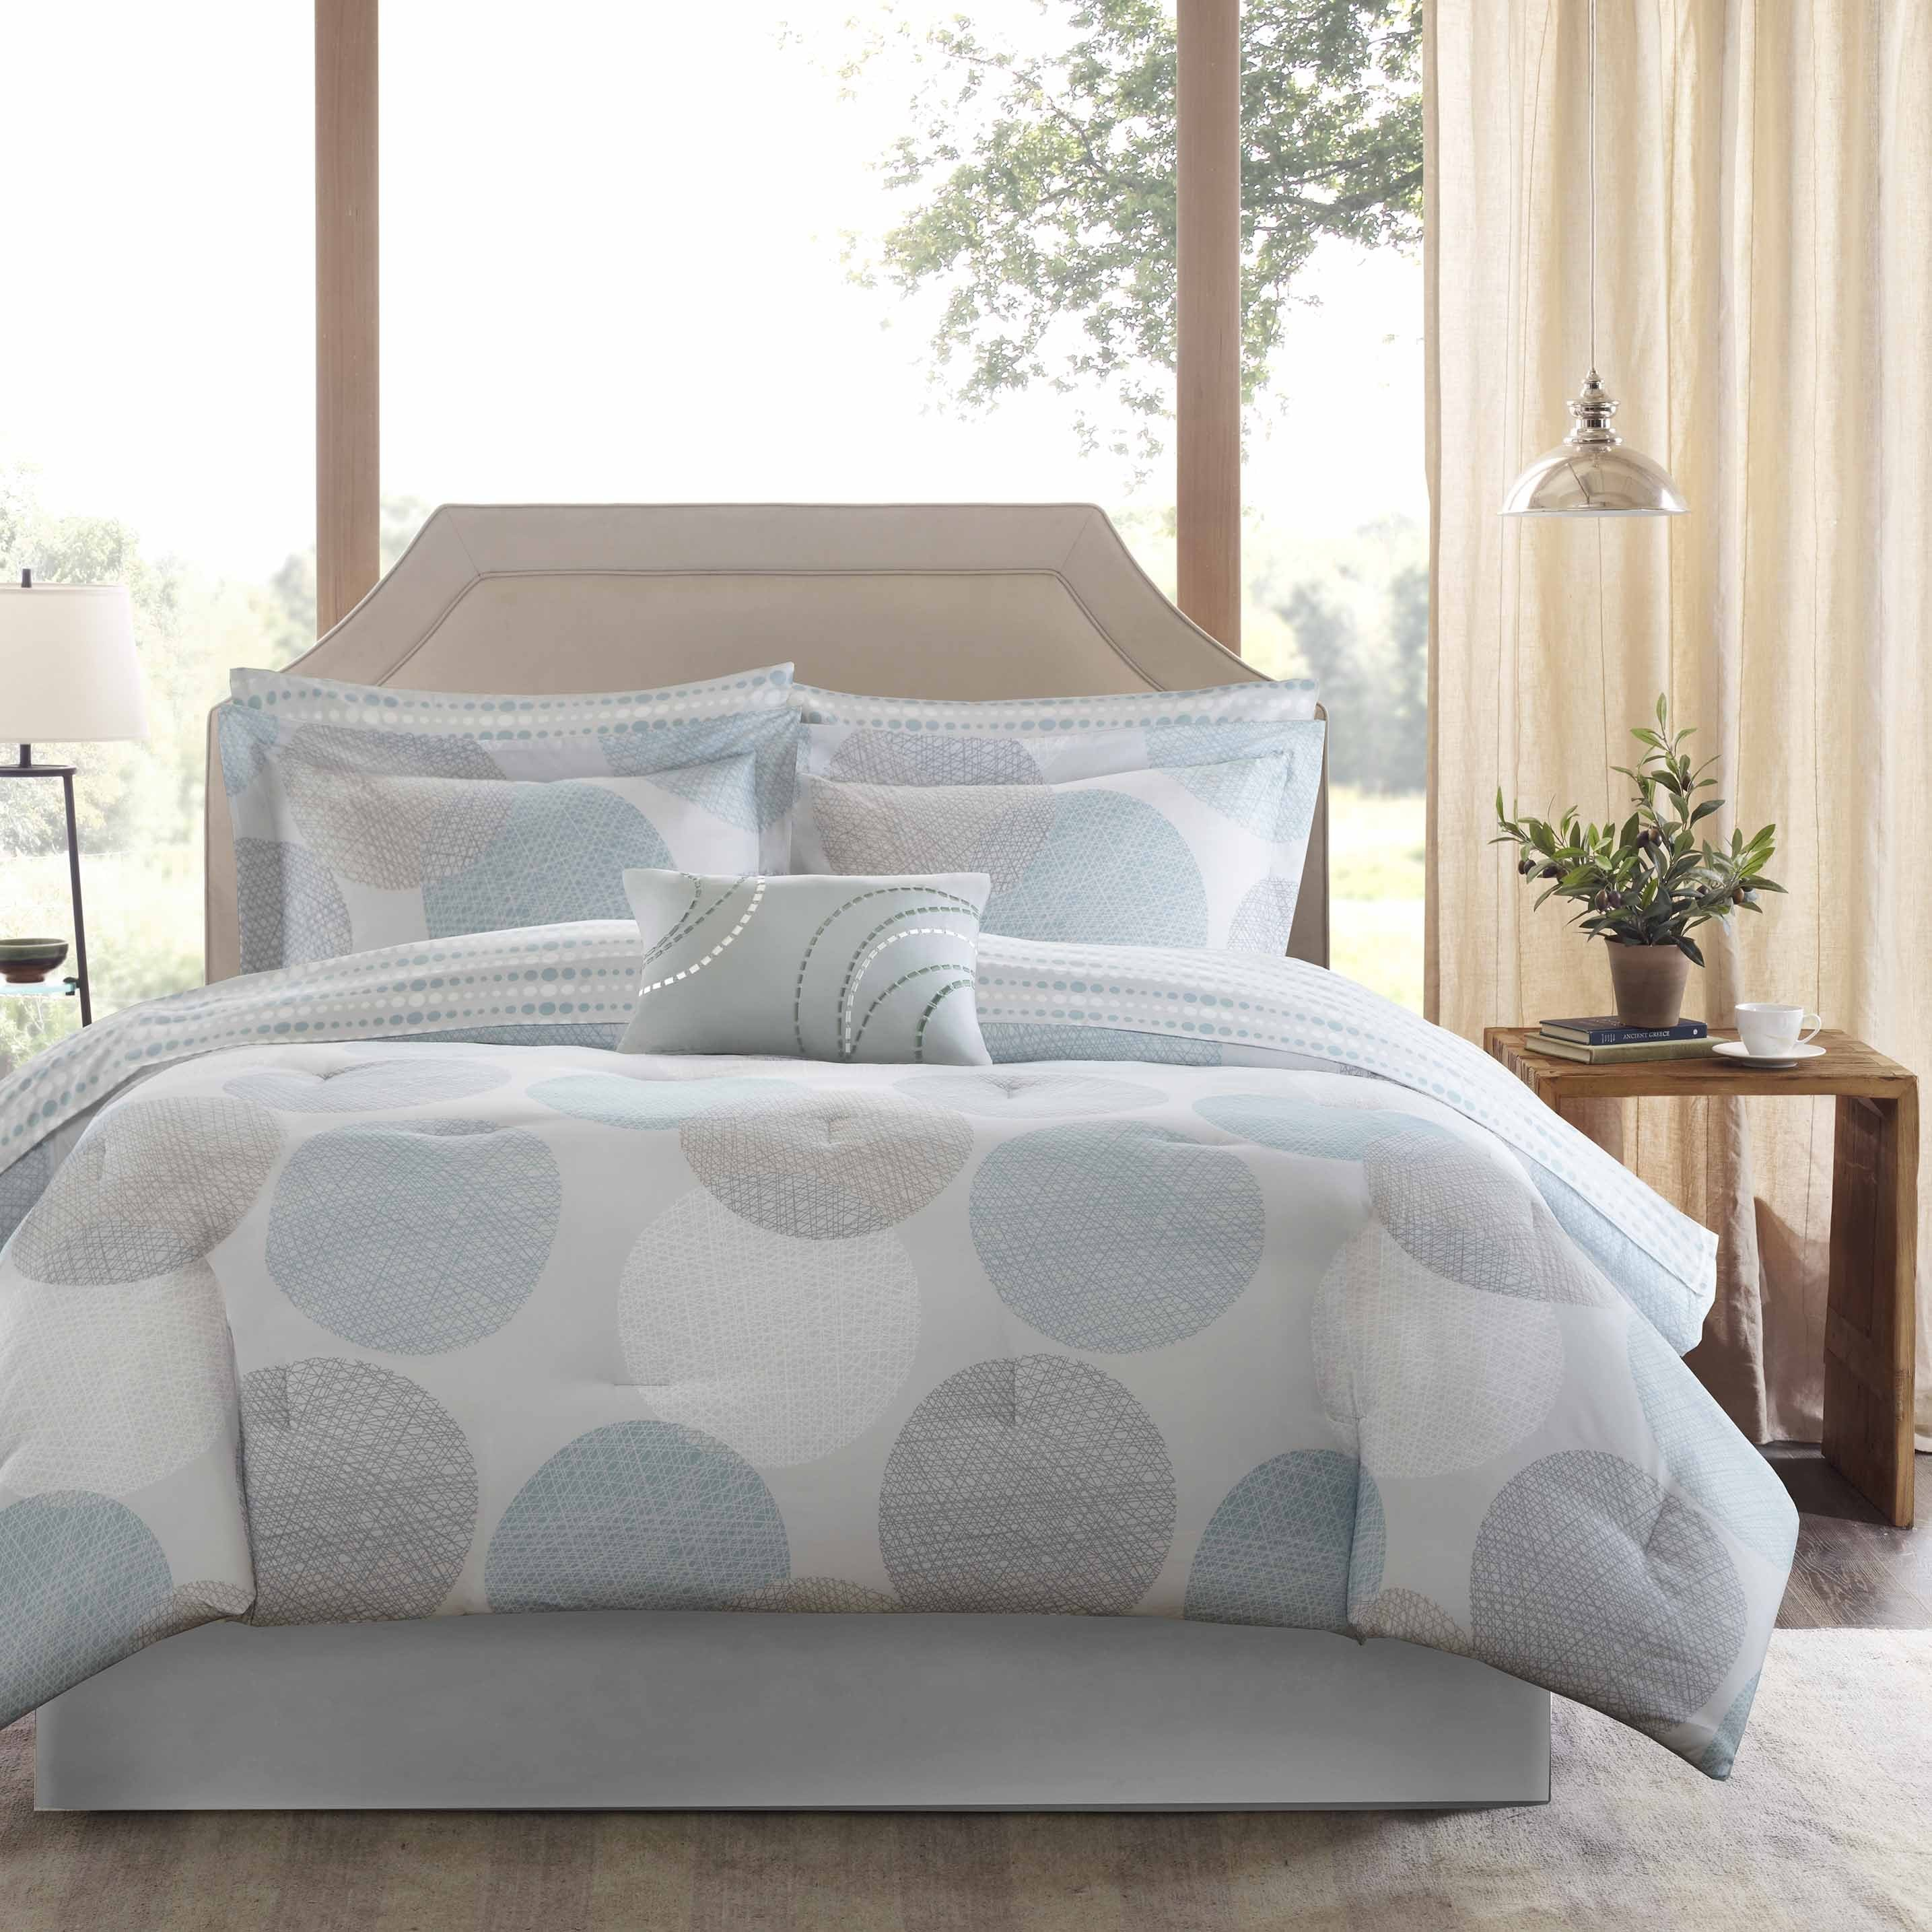 bedding set product shipping comforter com bed madison morris free polyester piece overstock park bath